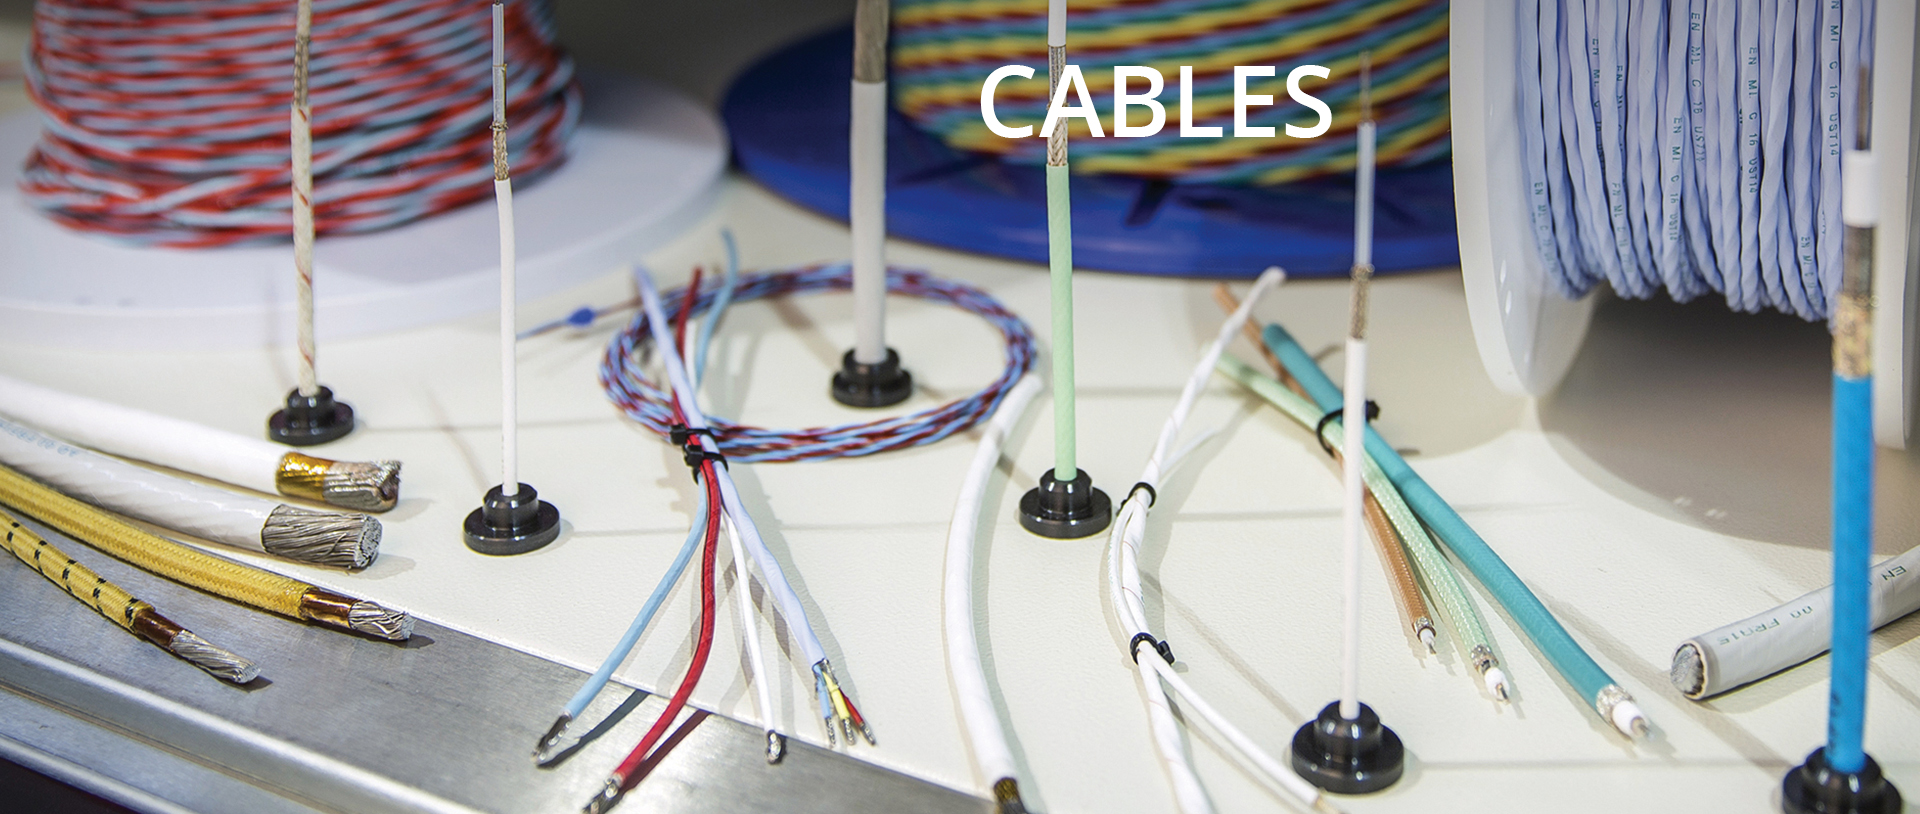 04_cables.jpg